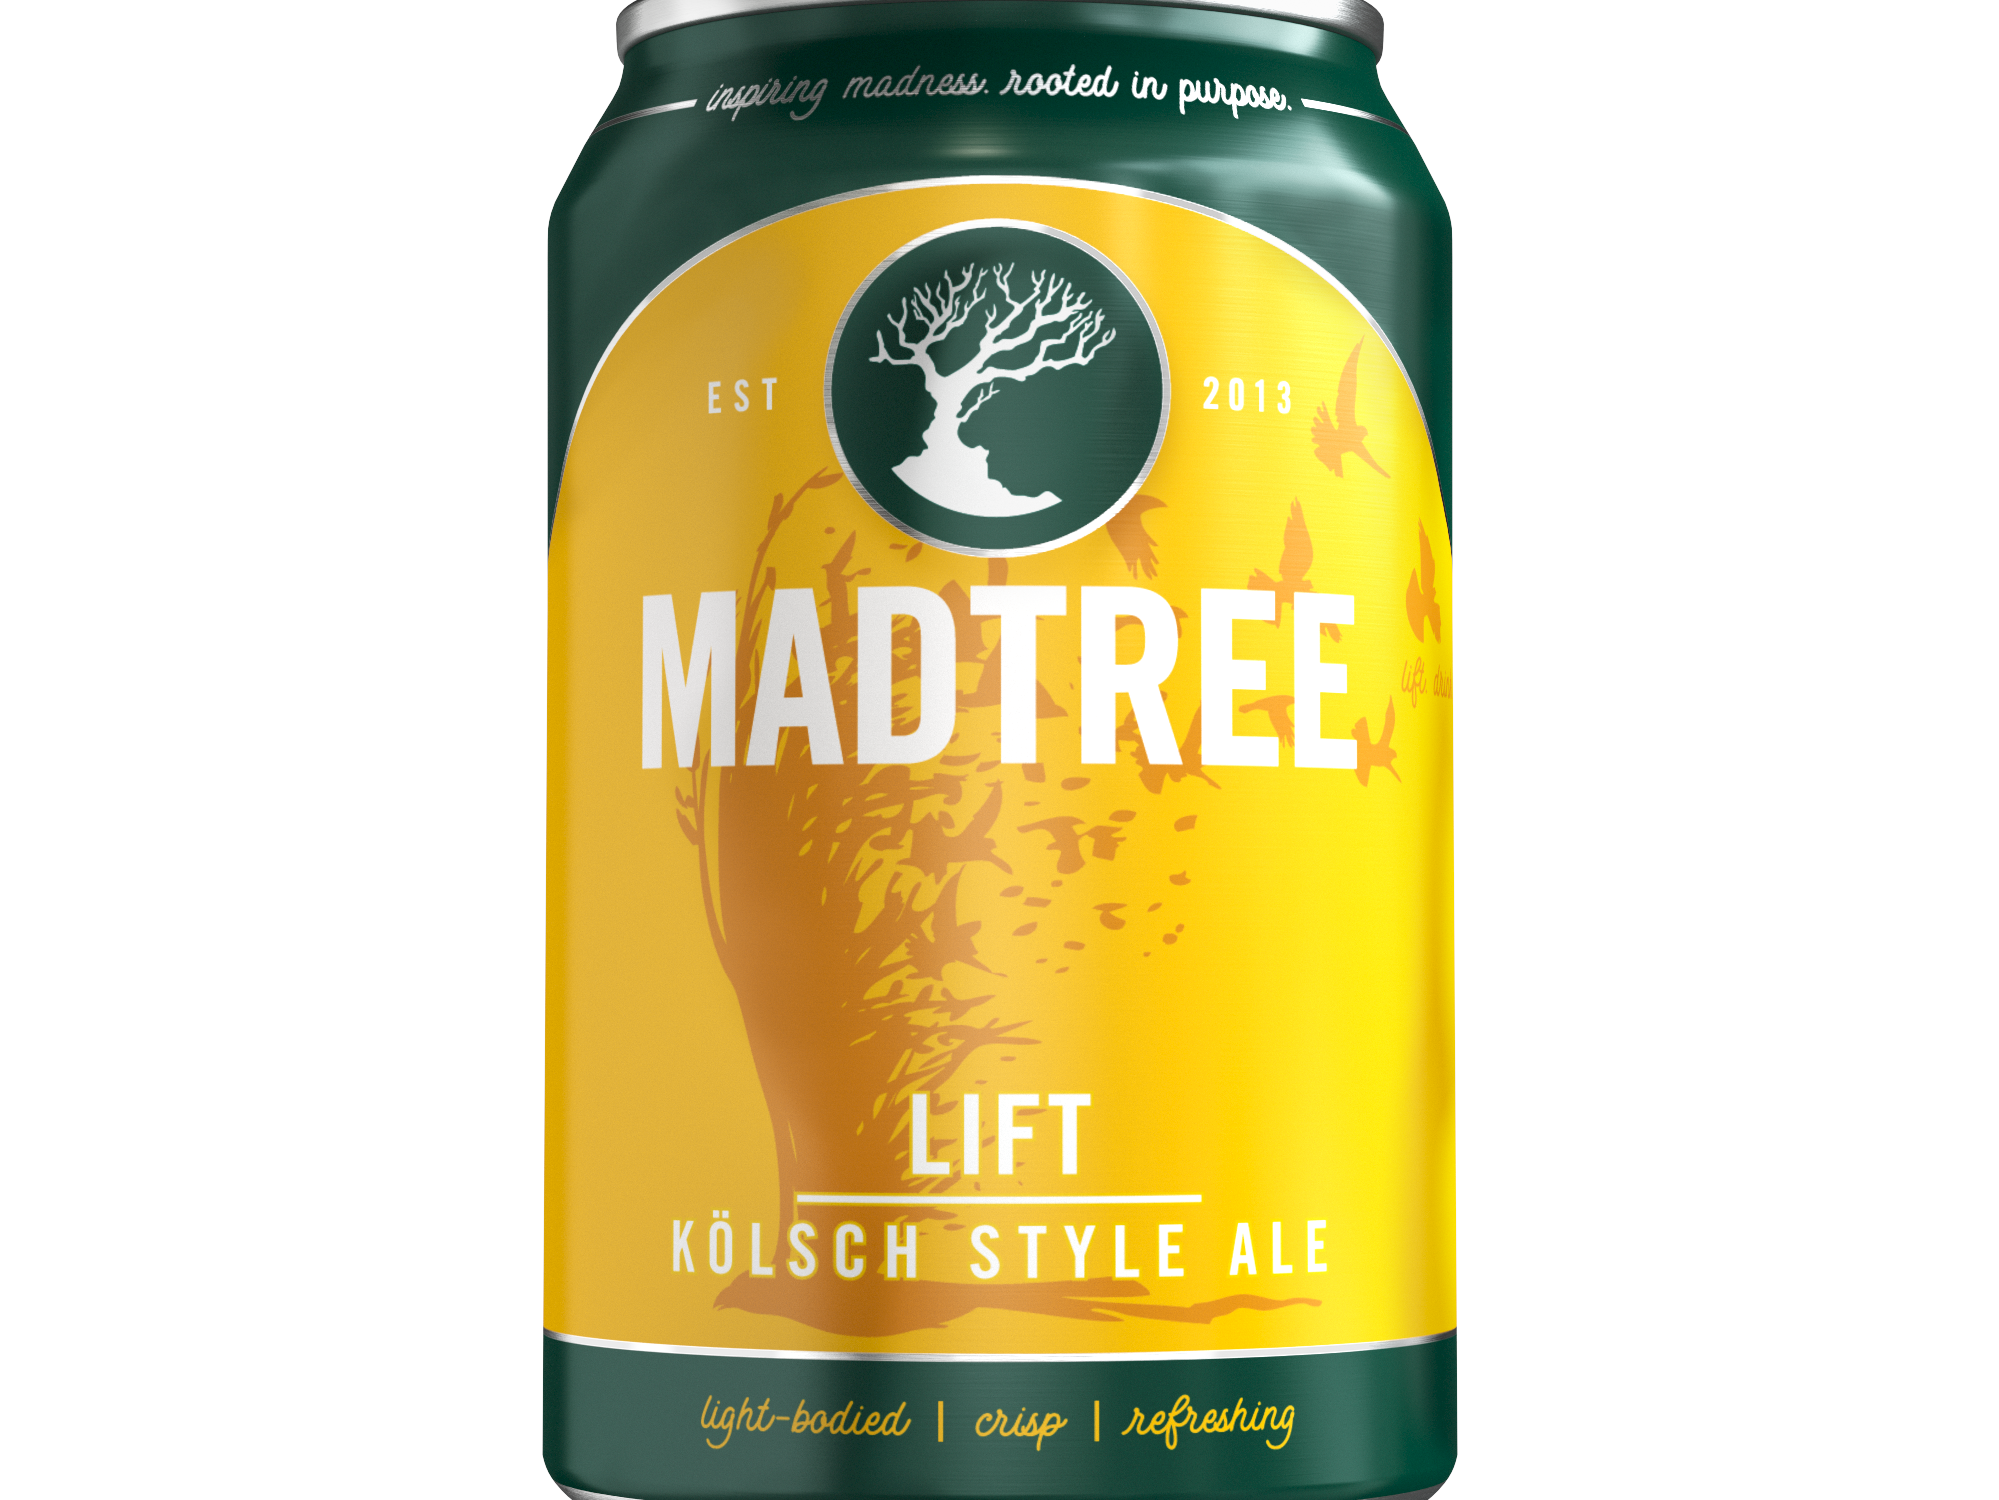 MadTree Brewing is rolling out redesigned cans beginning in early March. Pictured is a can of Lift.